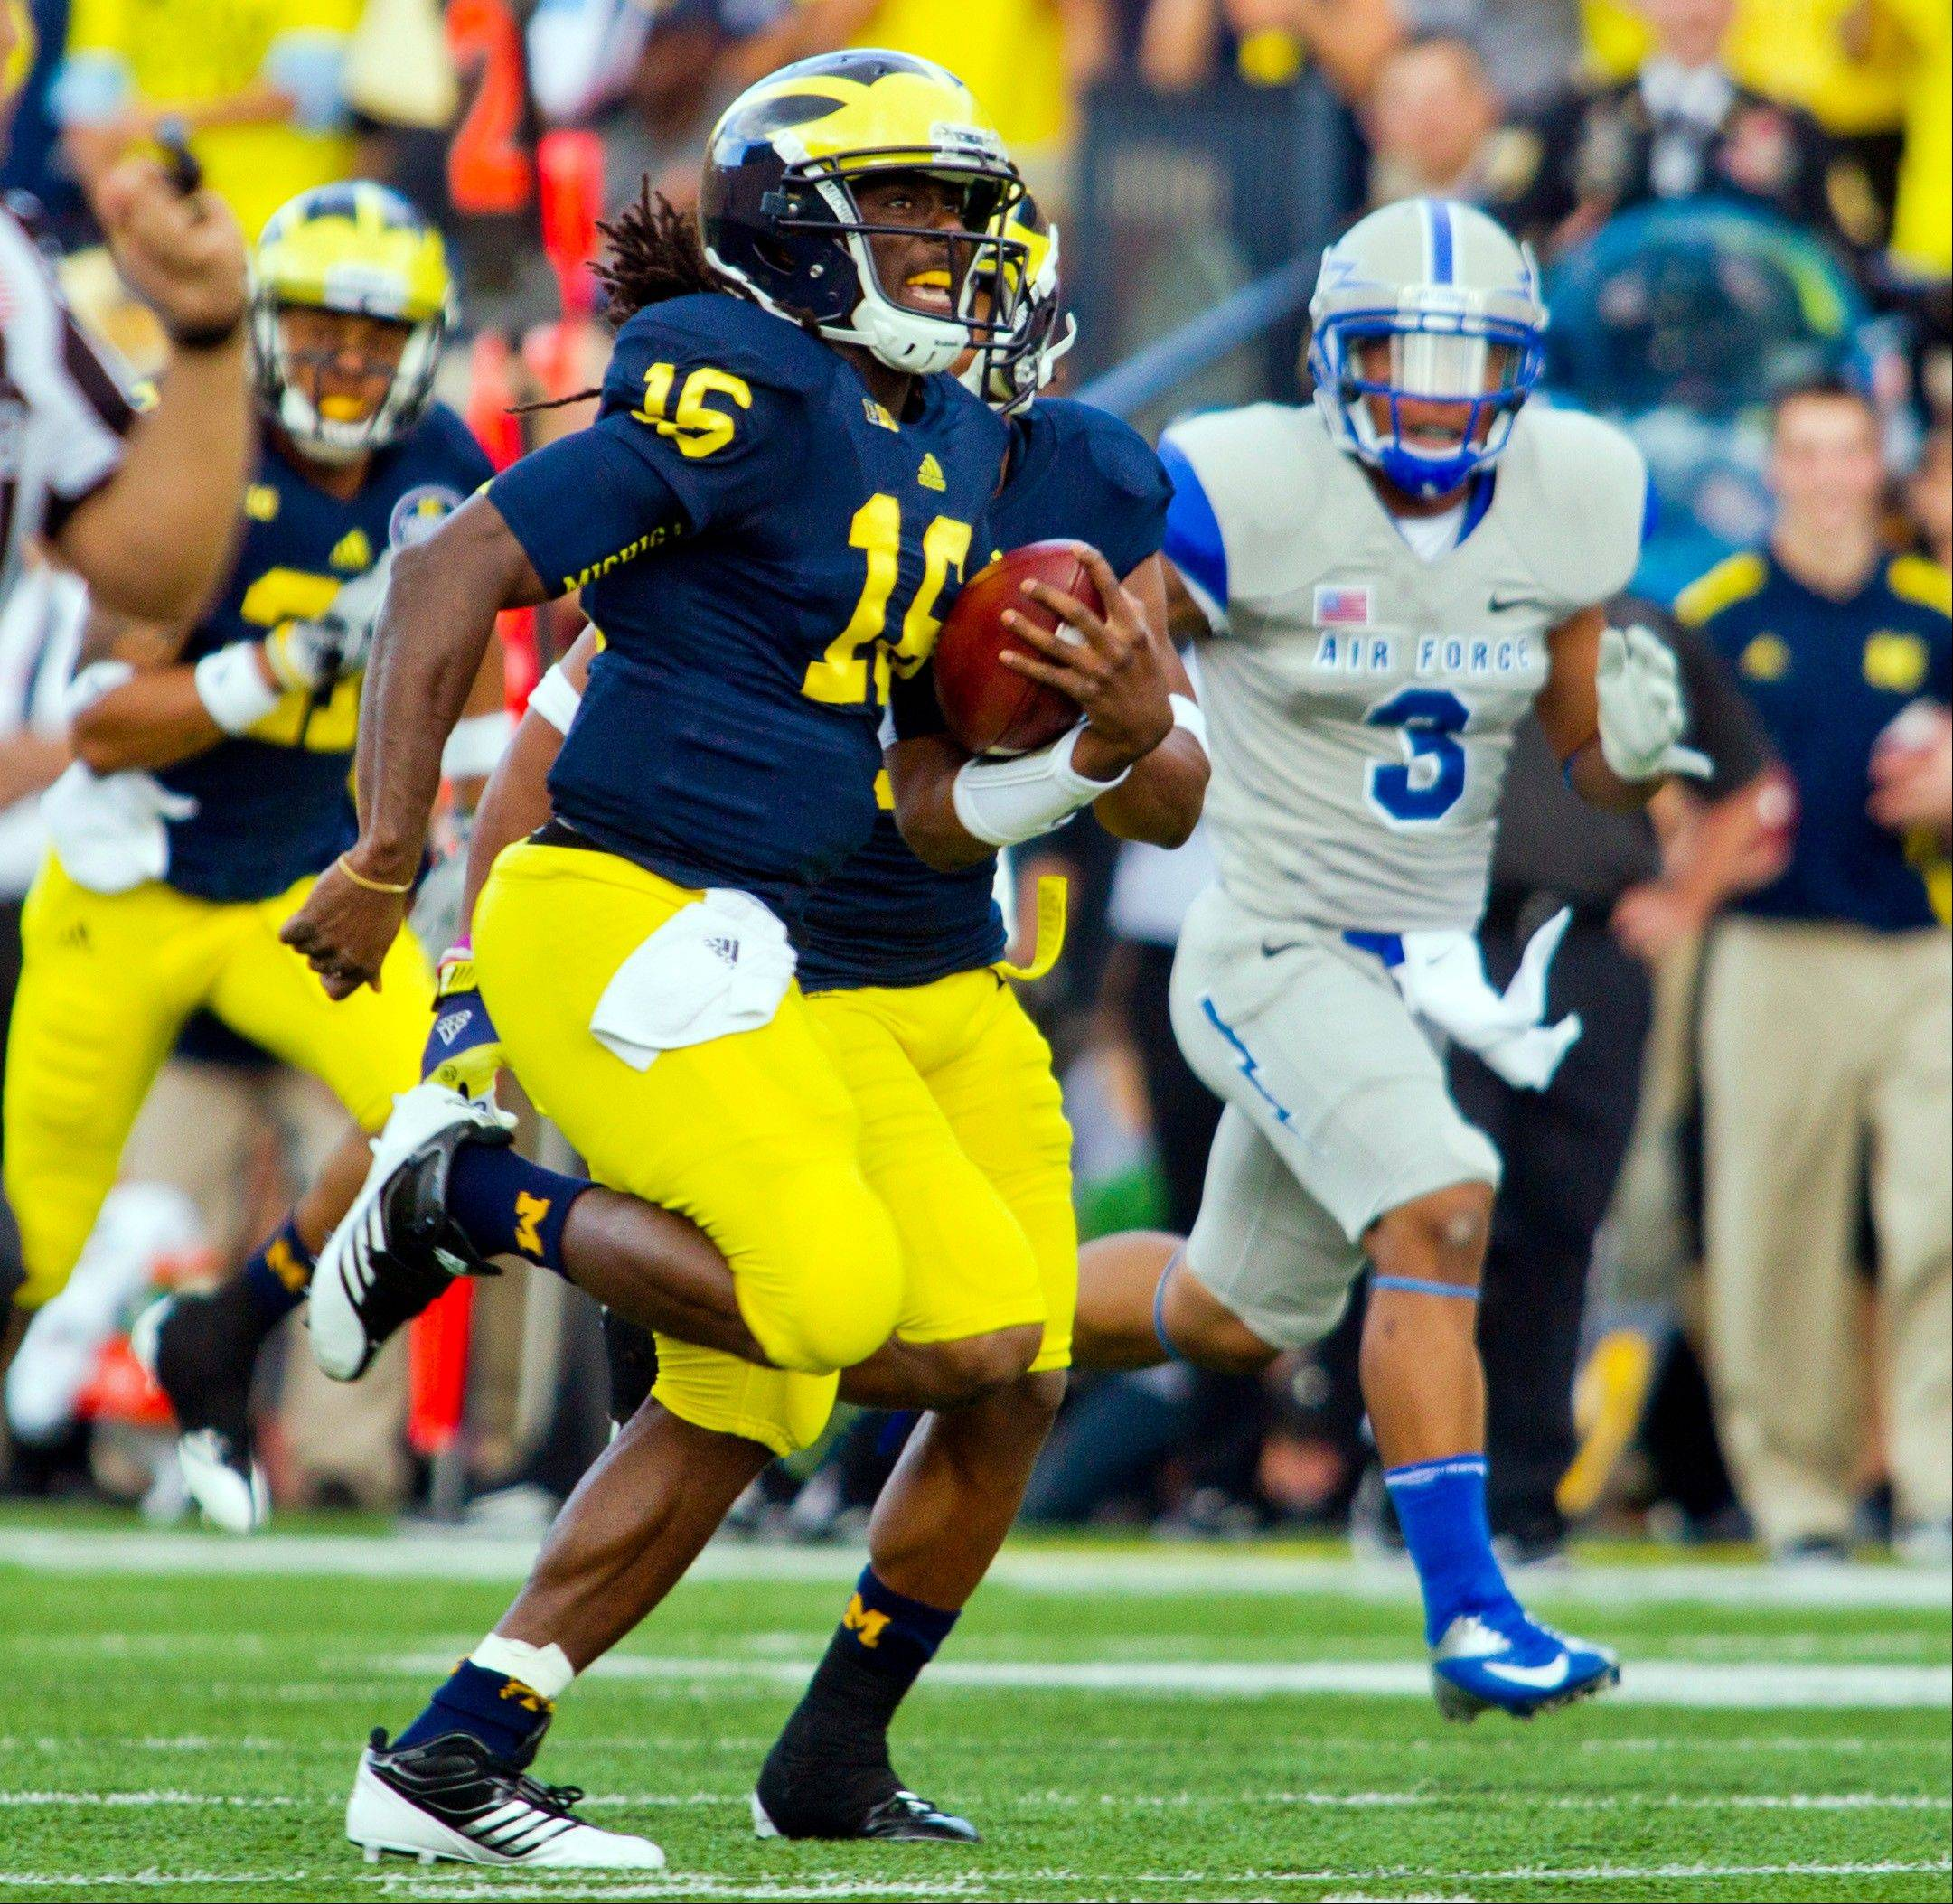 Michigan quarterback Denard Robinson rushes for a 79-yard touchdown Saturday against Air Force in Ann Arbor, Mich.